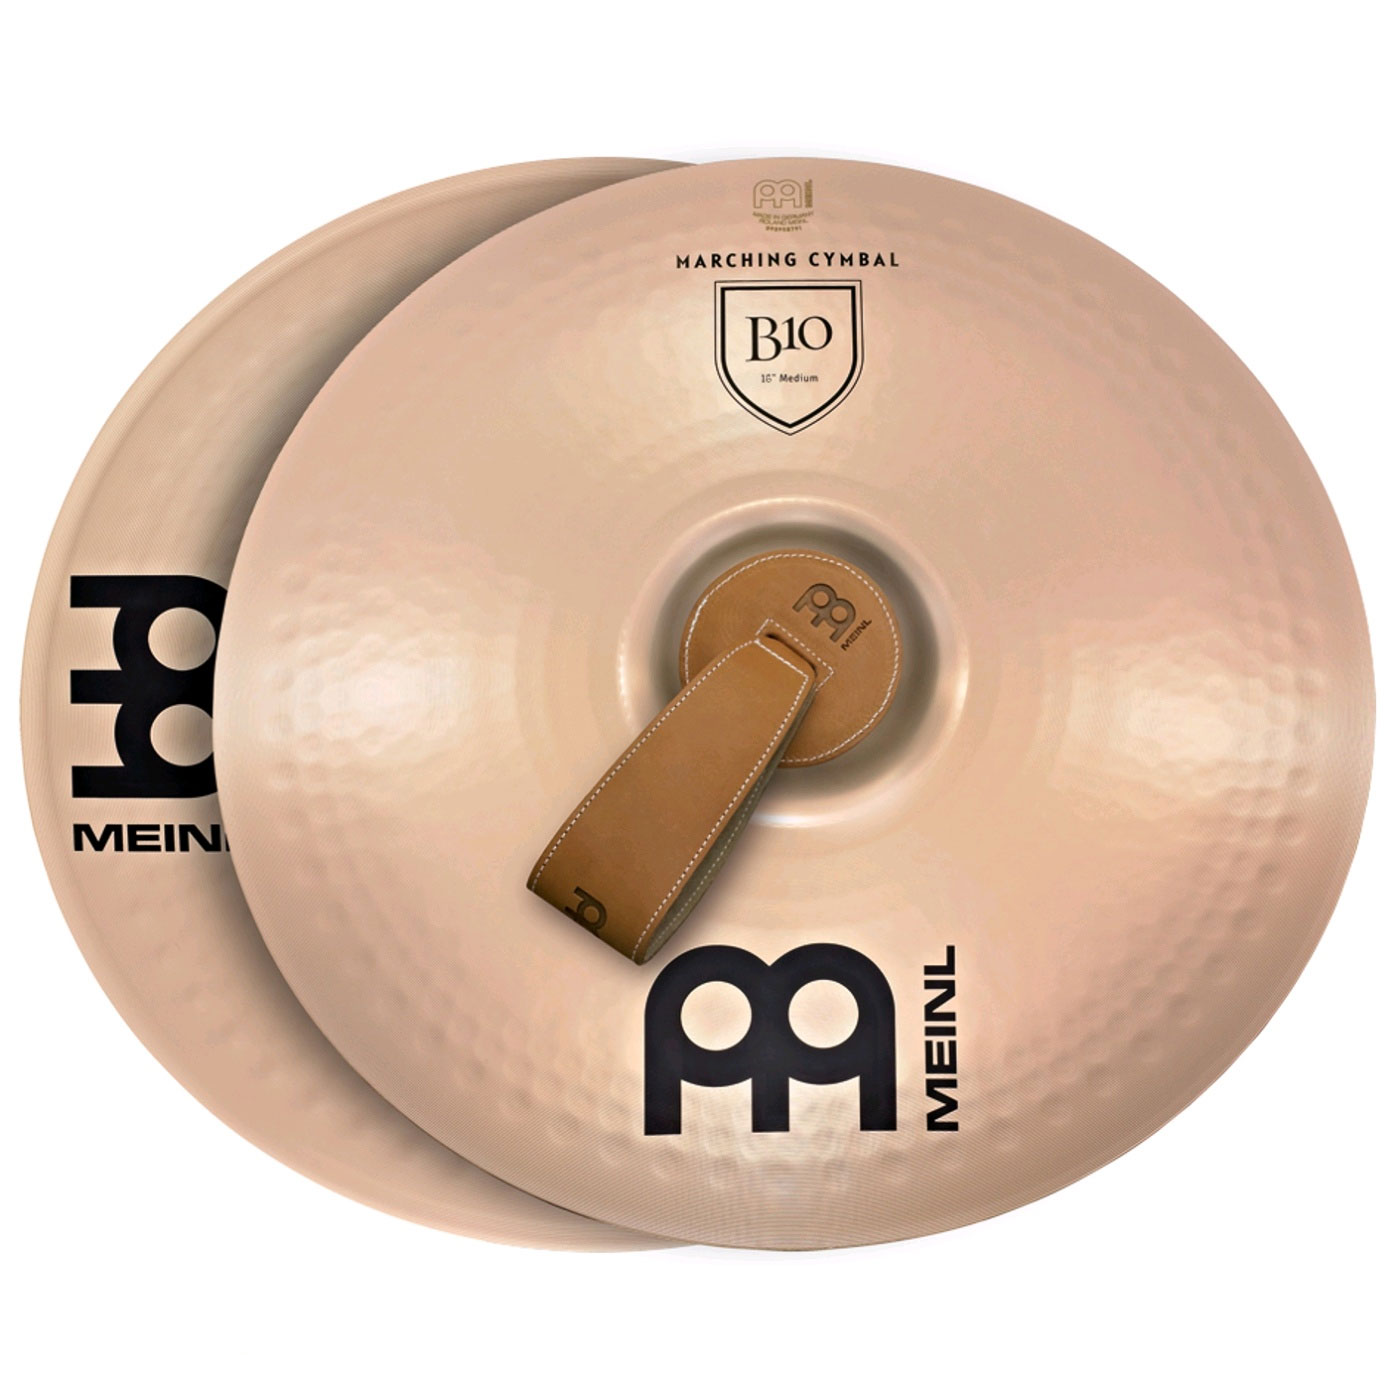 "Meinl 16"" Medium B10 Marching Cymbals Pair"